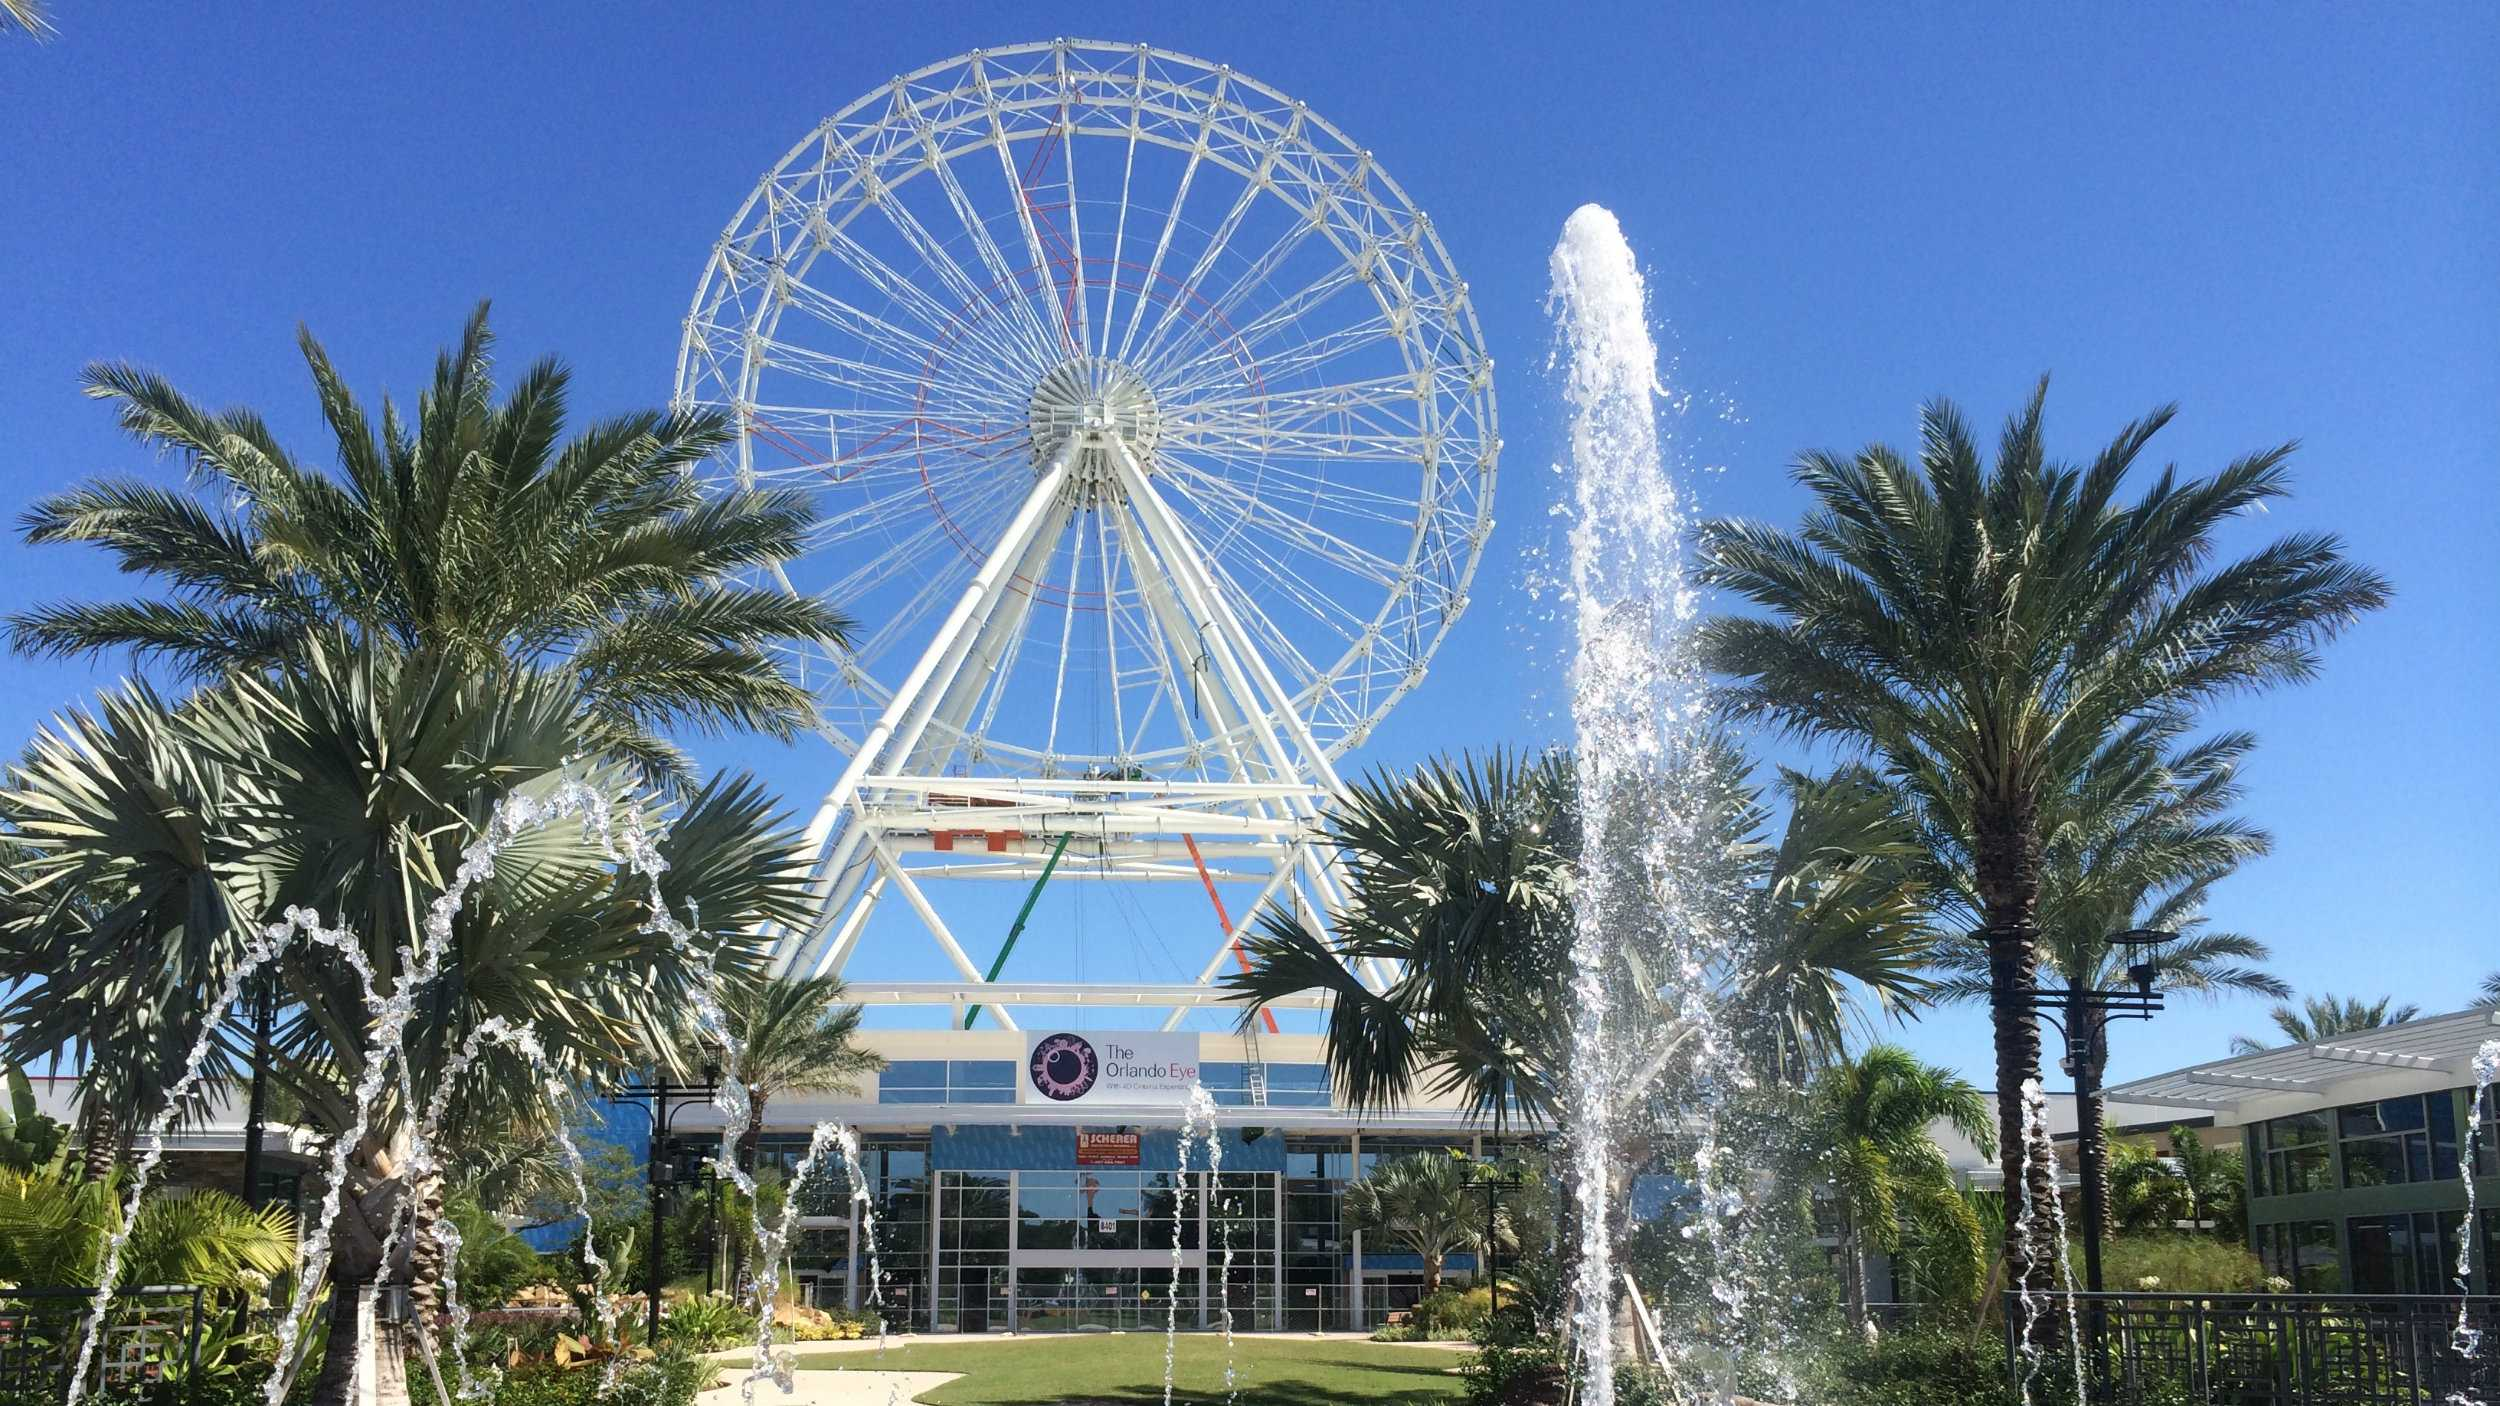 Take a look at Orlando My Way's aerial photos of the Orlando Eye's progress.